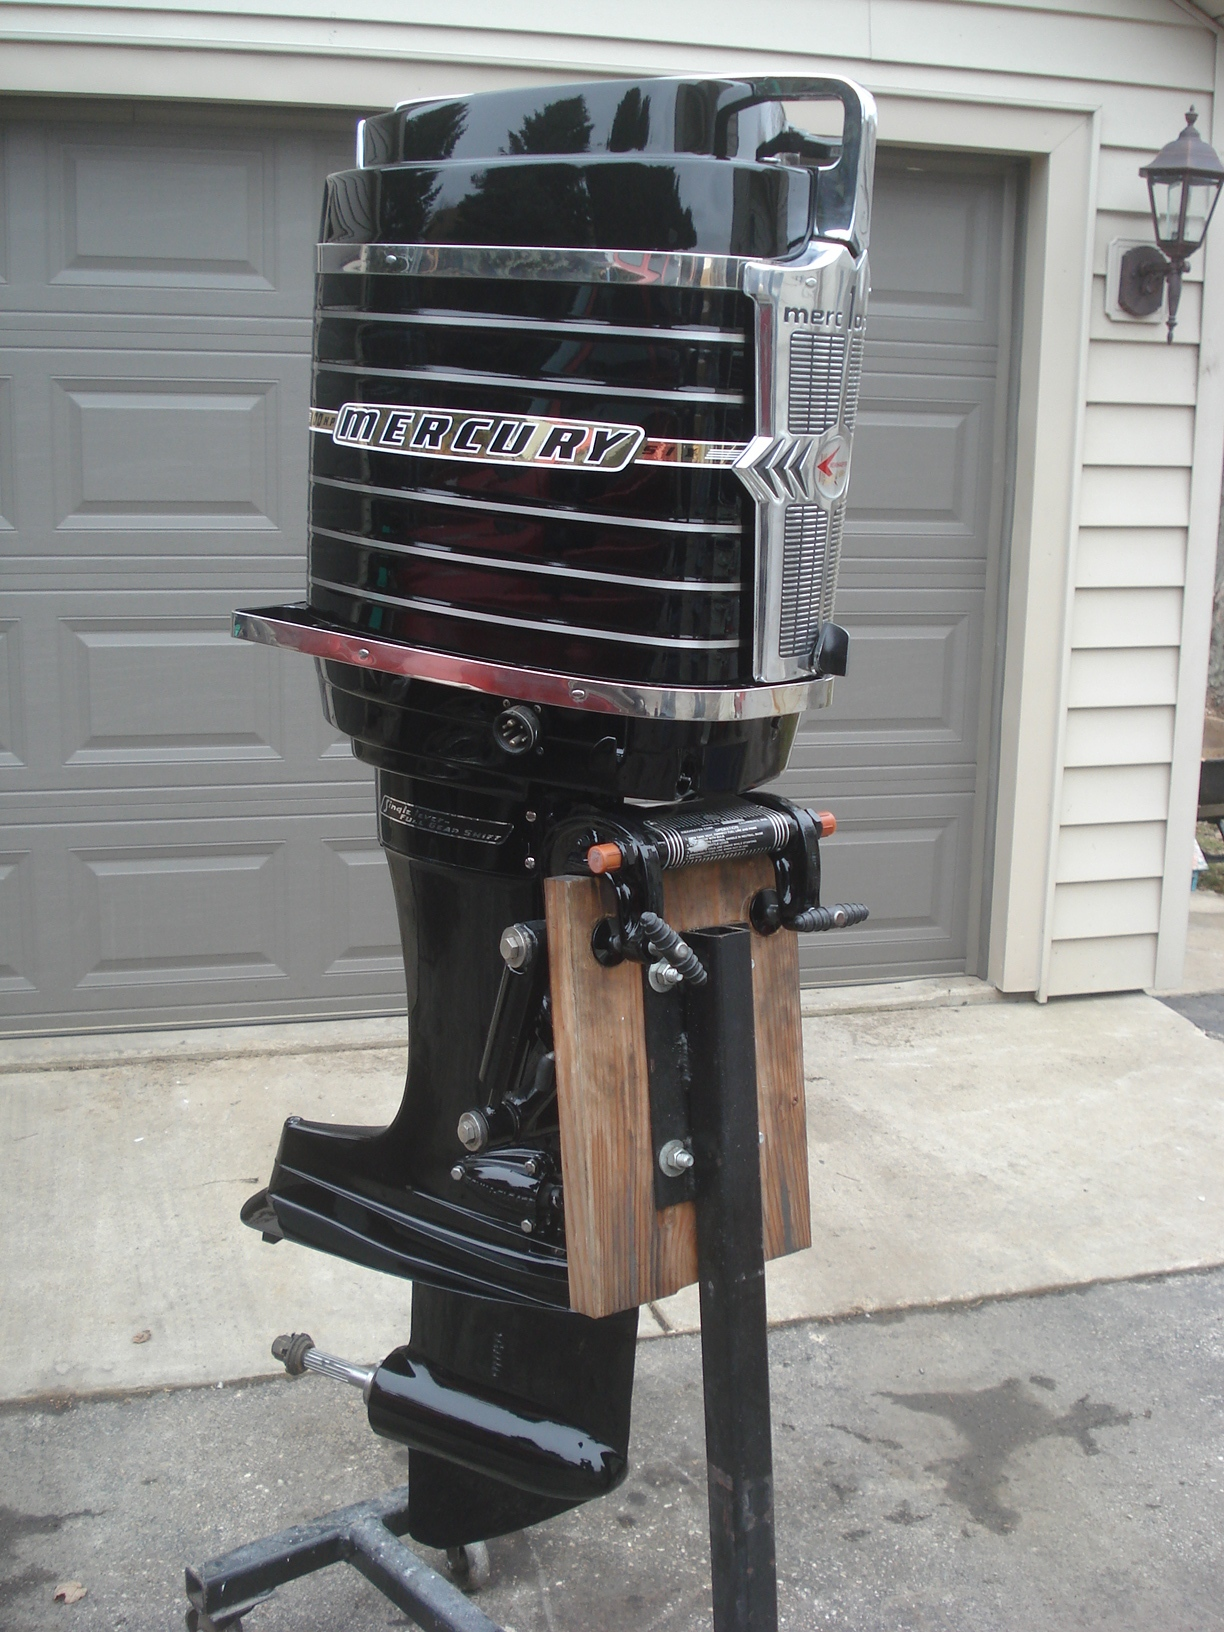 Classic mercury outboards pics completed motors for Mercury marine motors price